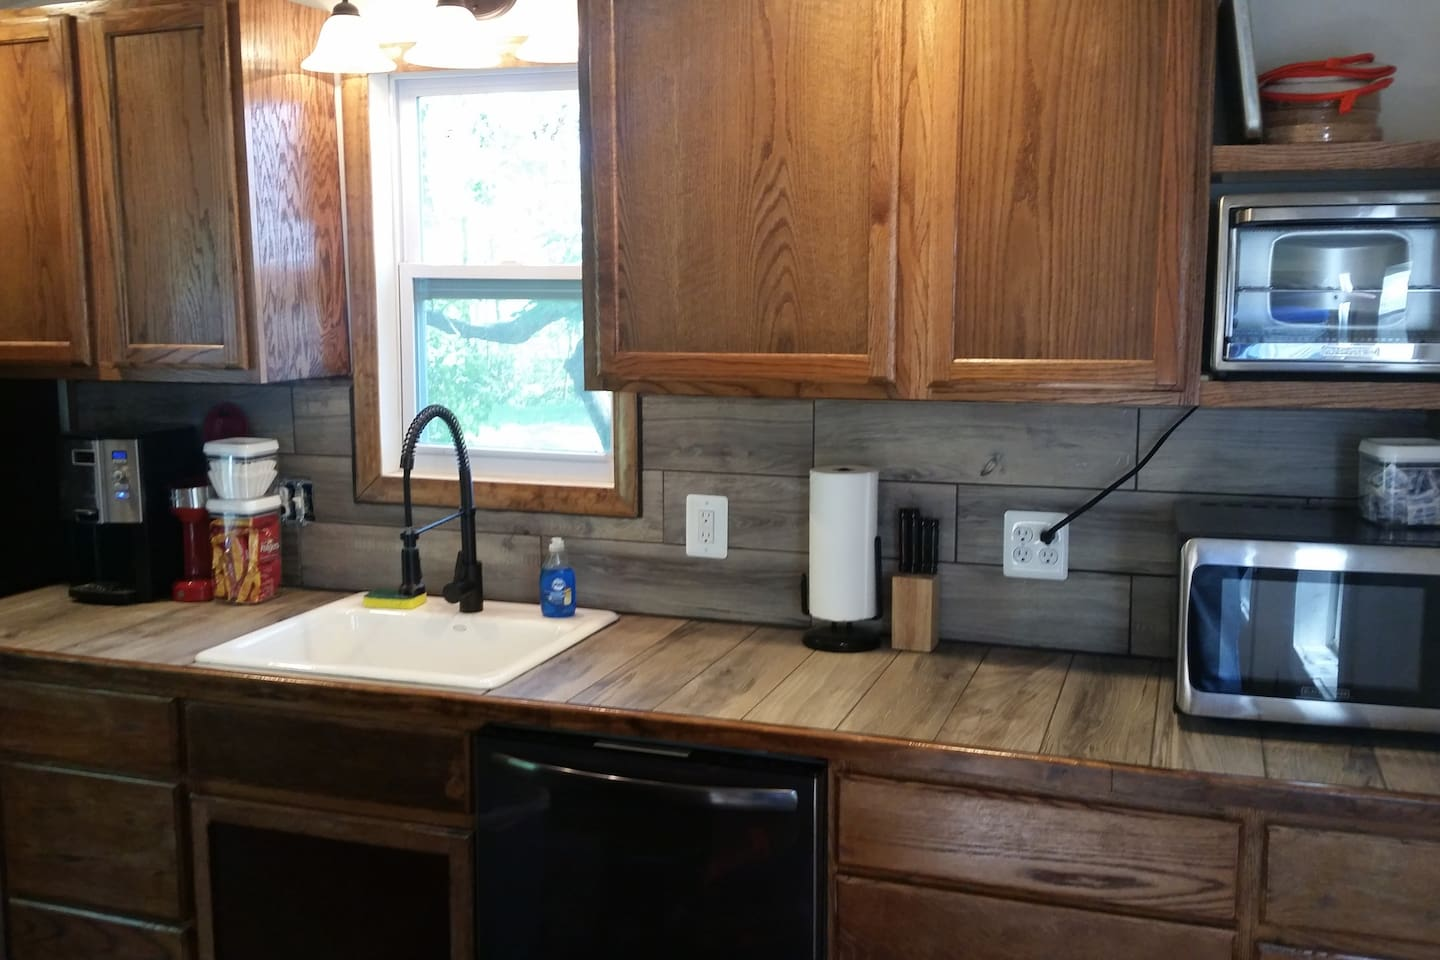 A complete kitchen that includes a drip coffee pot, a single serve maker, microwave, toaster oven, and  is fully equipped with side by side refrigerator freezer, dishwasher and gas range.